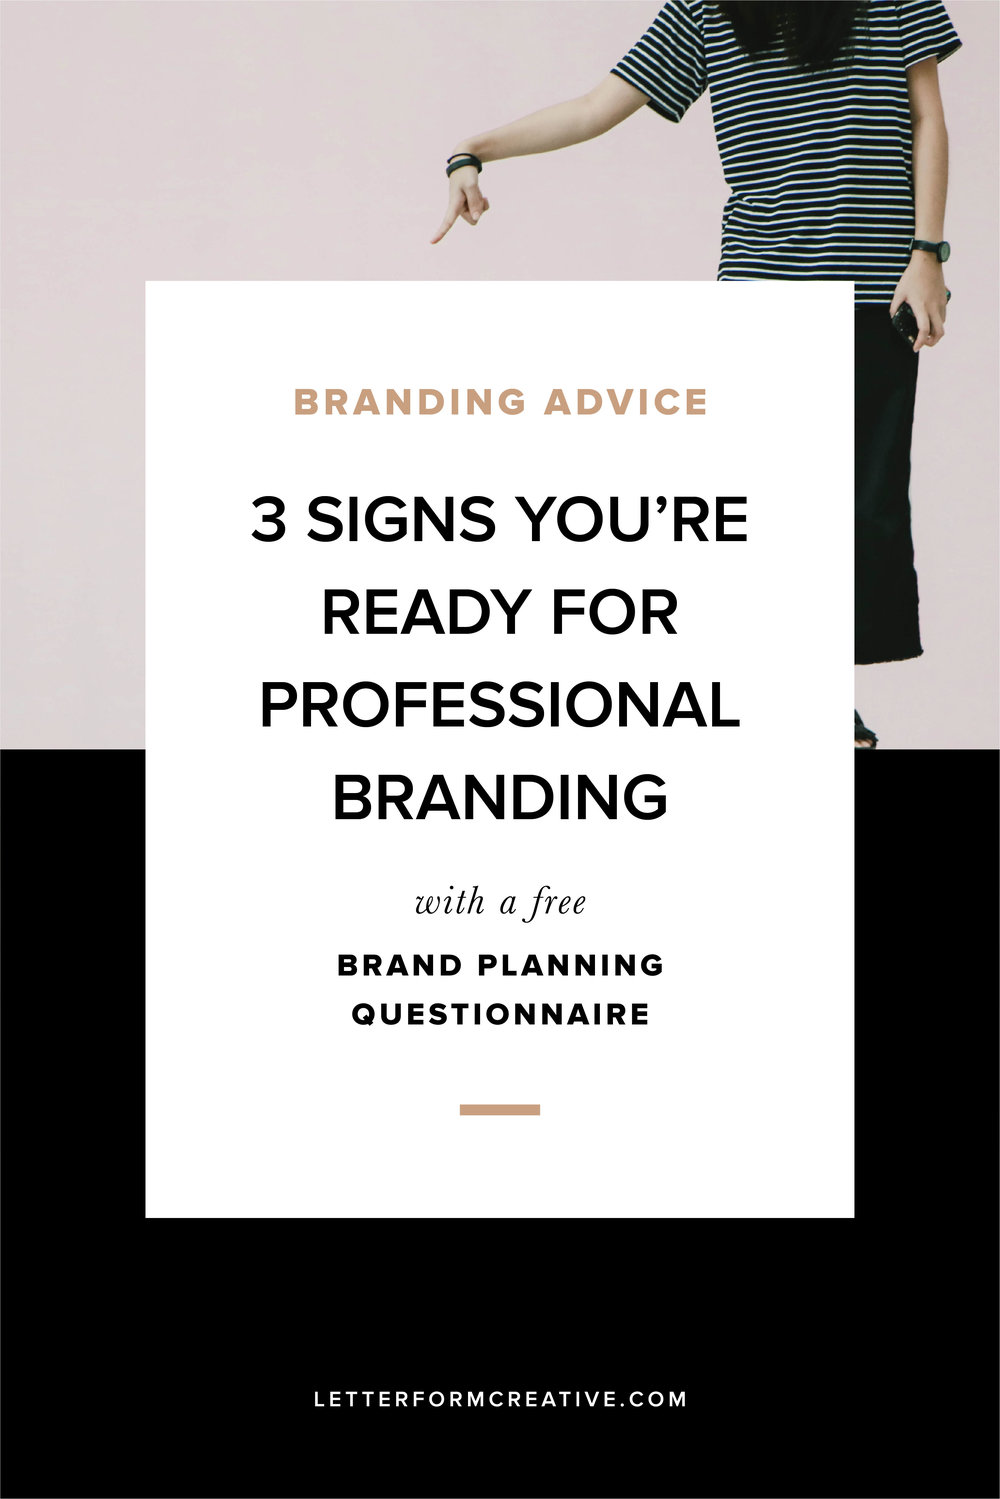 Are you a small business owner doing your own branding? Wondering if you're ready to hire a professional brand designer? These three signs will help you identify if you're ready to make the investment! Click through for a free brand planning questionnaire to prepare you for working with a designer.